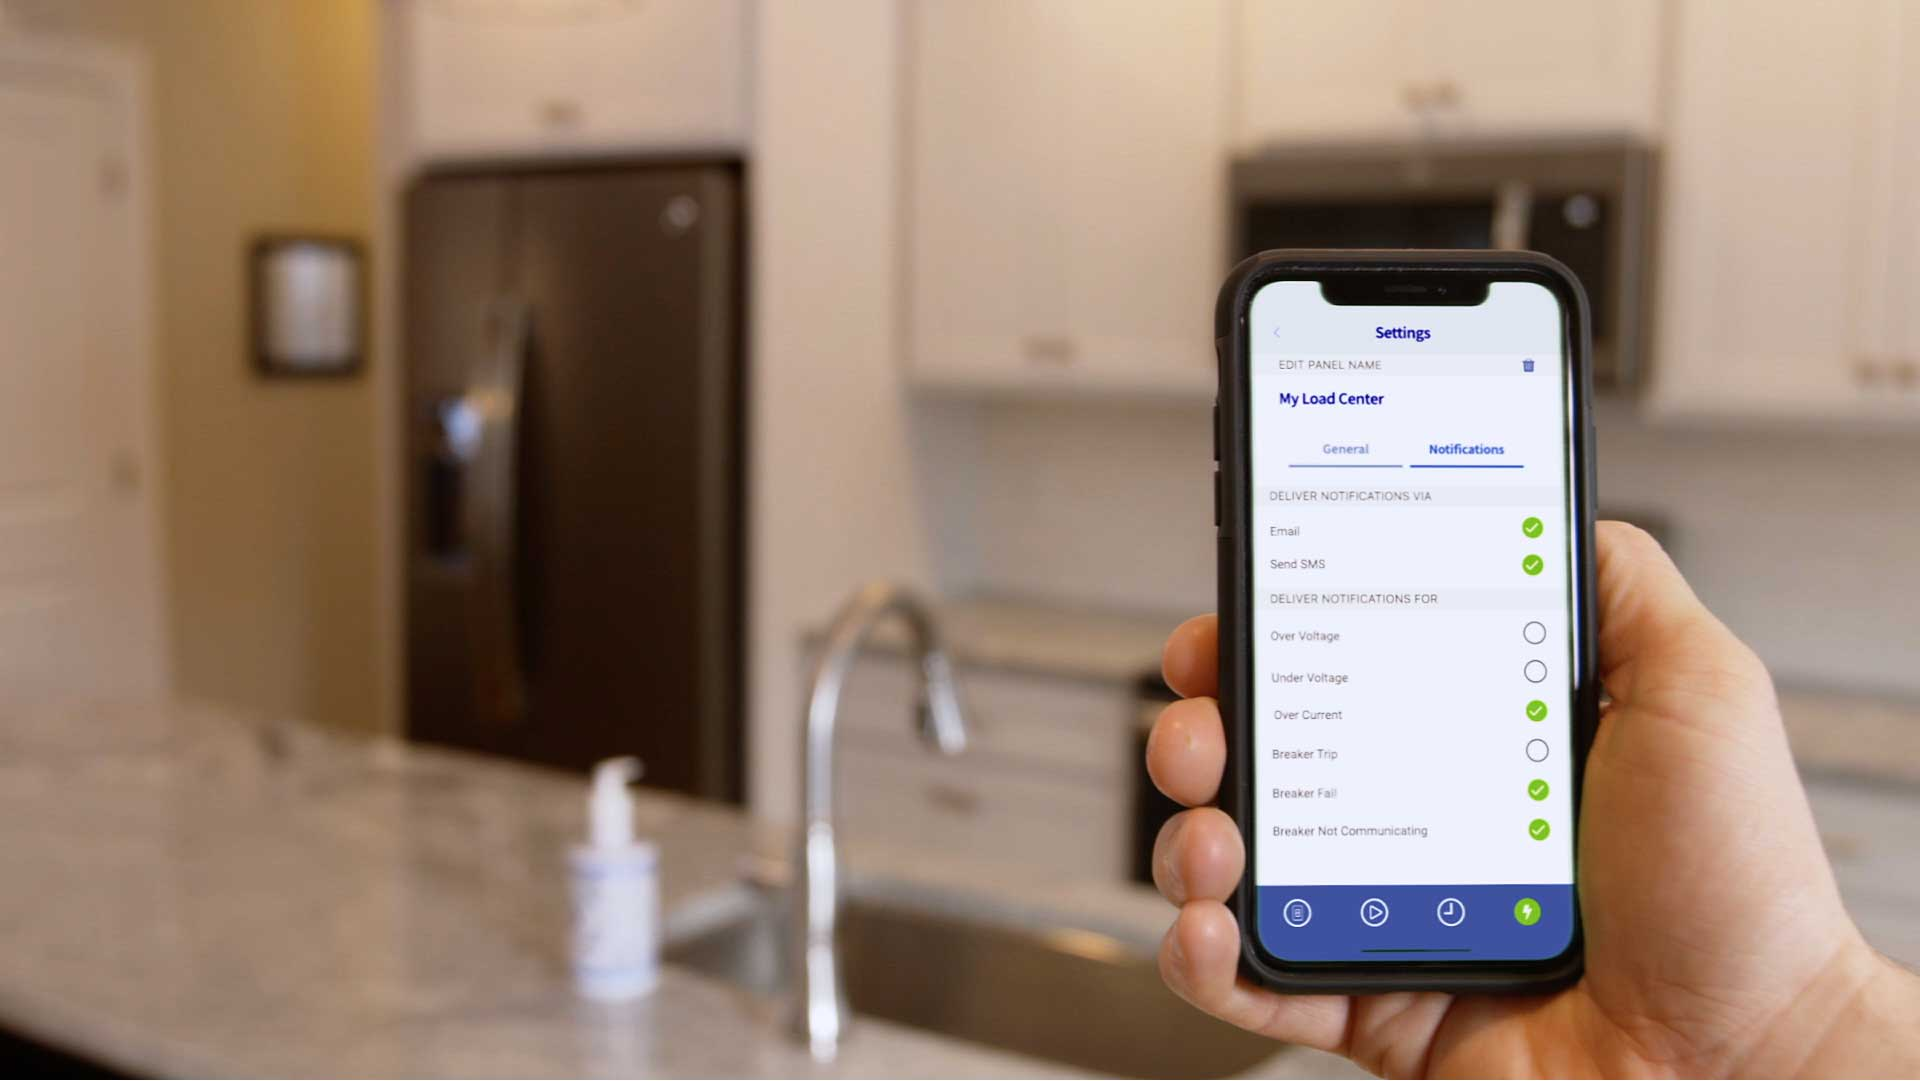 Using the My Leviton App, users can monitor electricity usage per branch circuit or appliance, view usage trends and estimate their electricity bill, setup alerts to be notified when a circuit breaker has tripped and why, or evaluate if an appliance has been on or off for a specific amount of time. Users can also be assured the load center's smart circuit breakers are receiving the latest firmware updates.